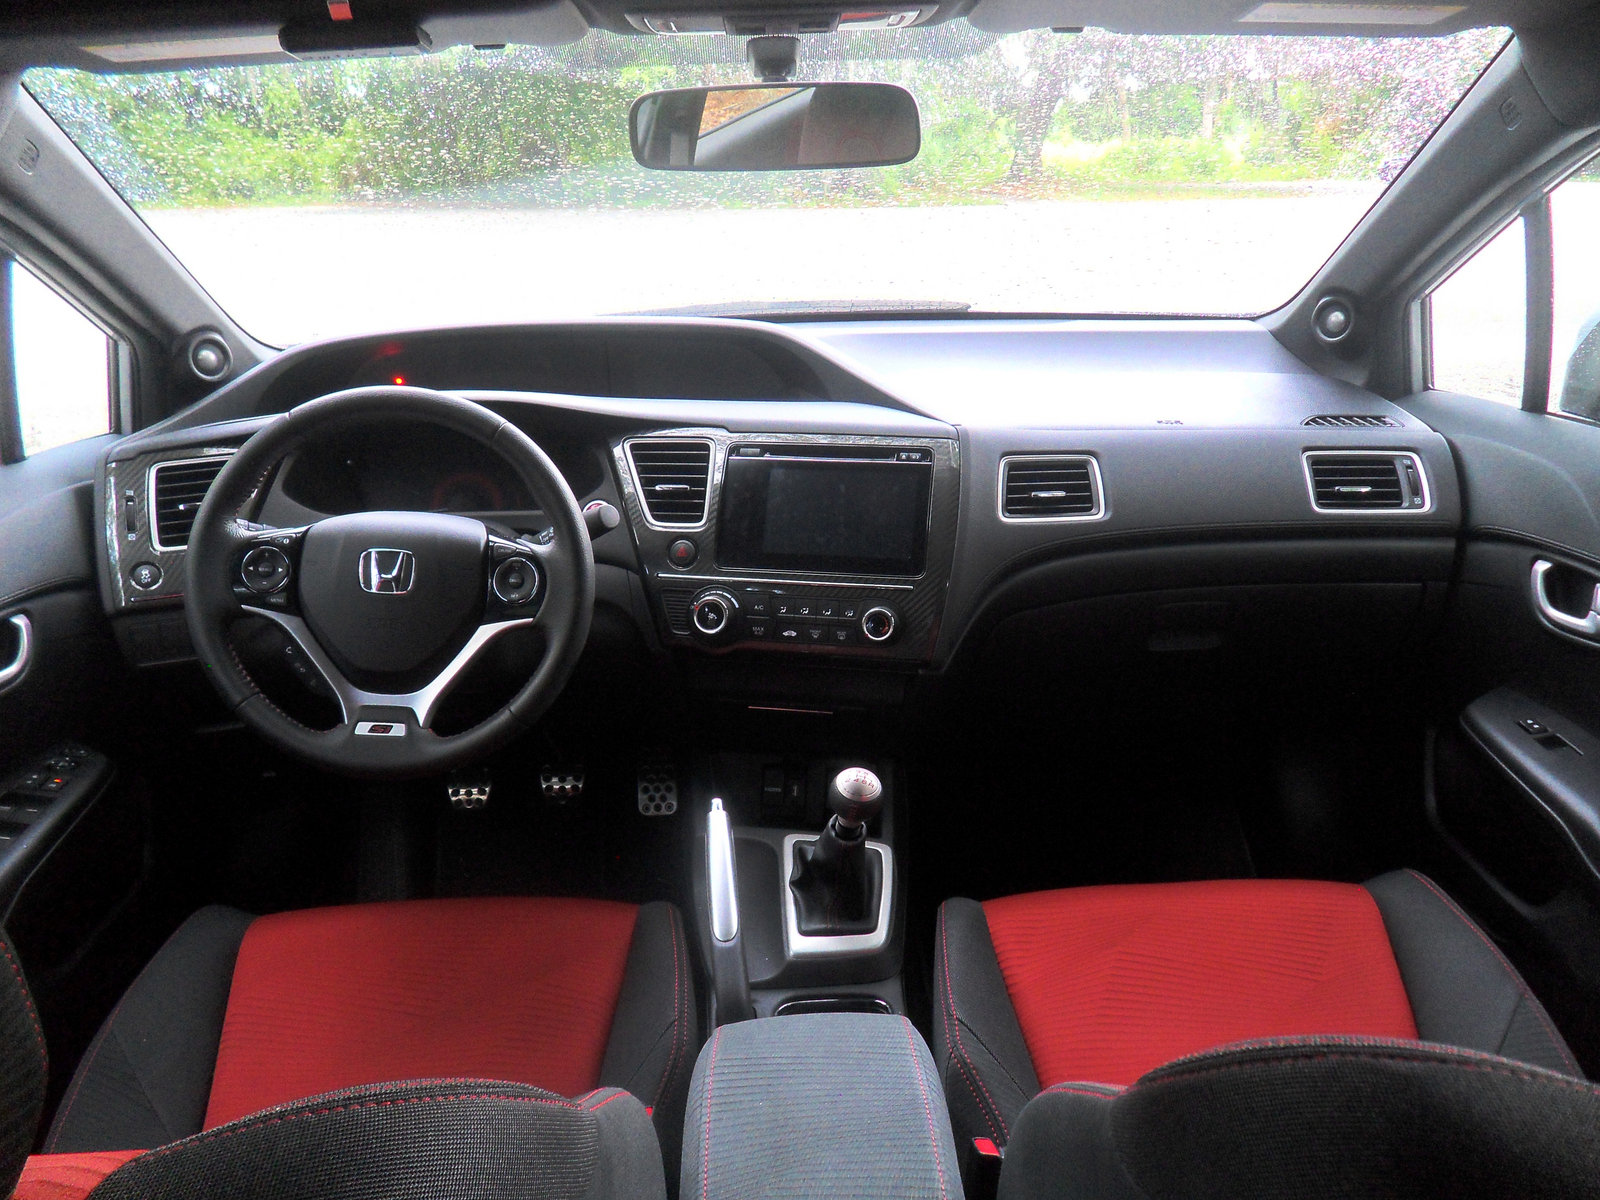 Honda Civic Si 2014 Interior